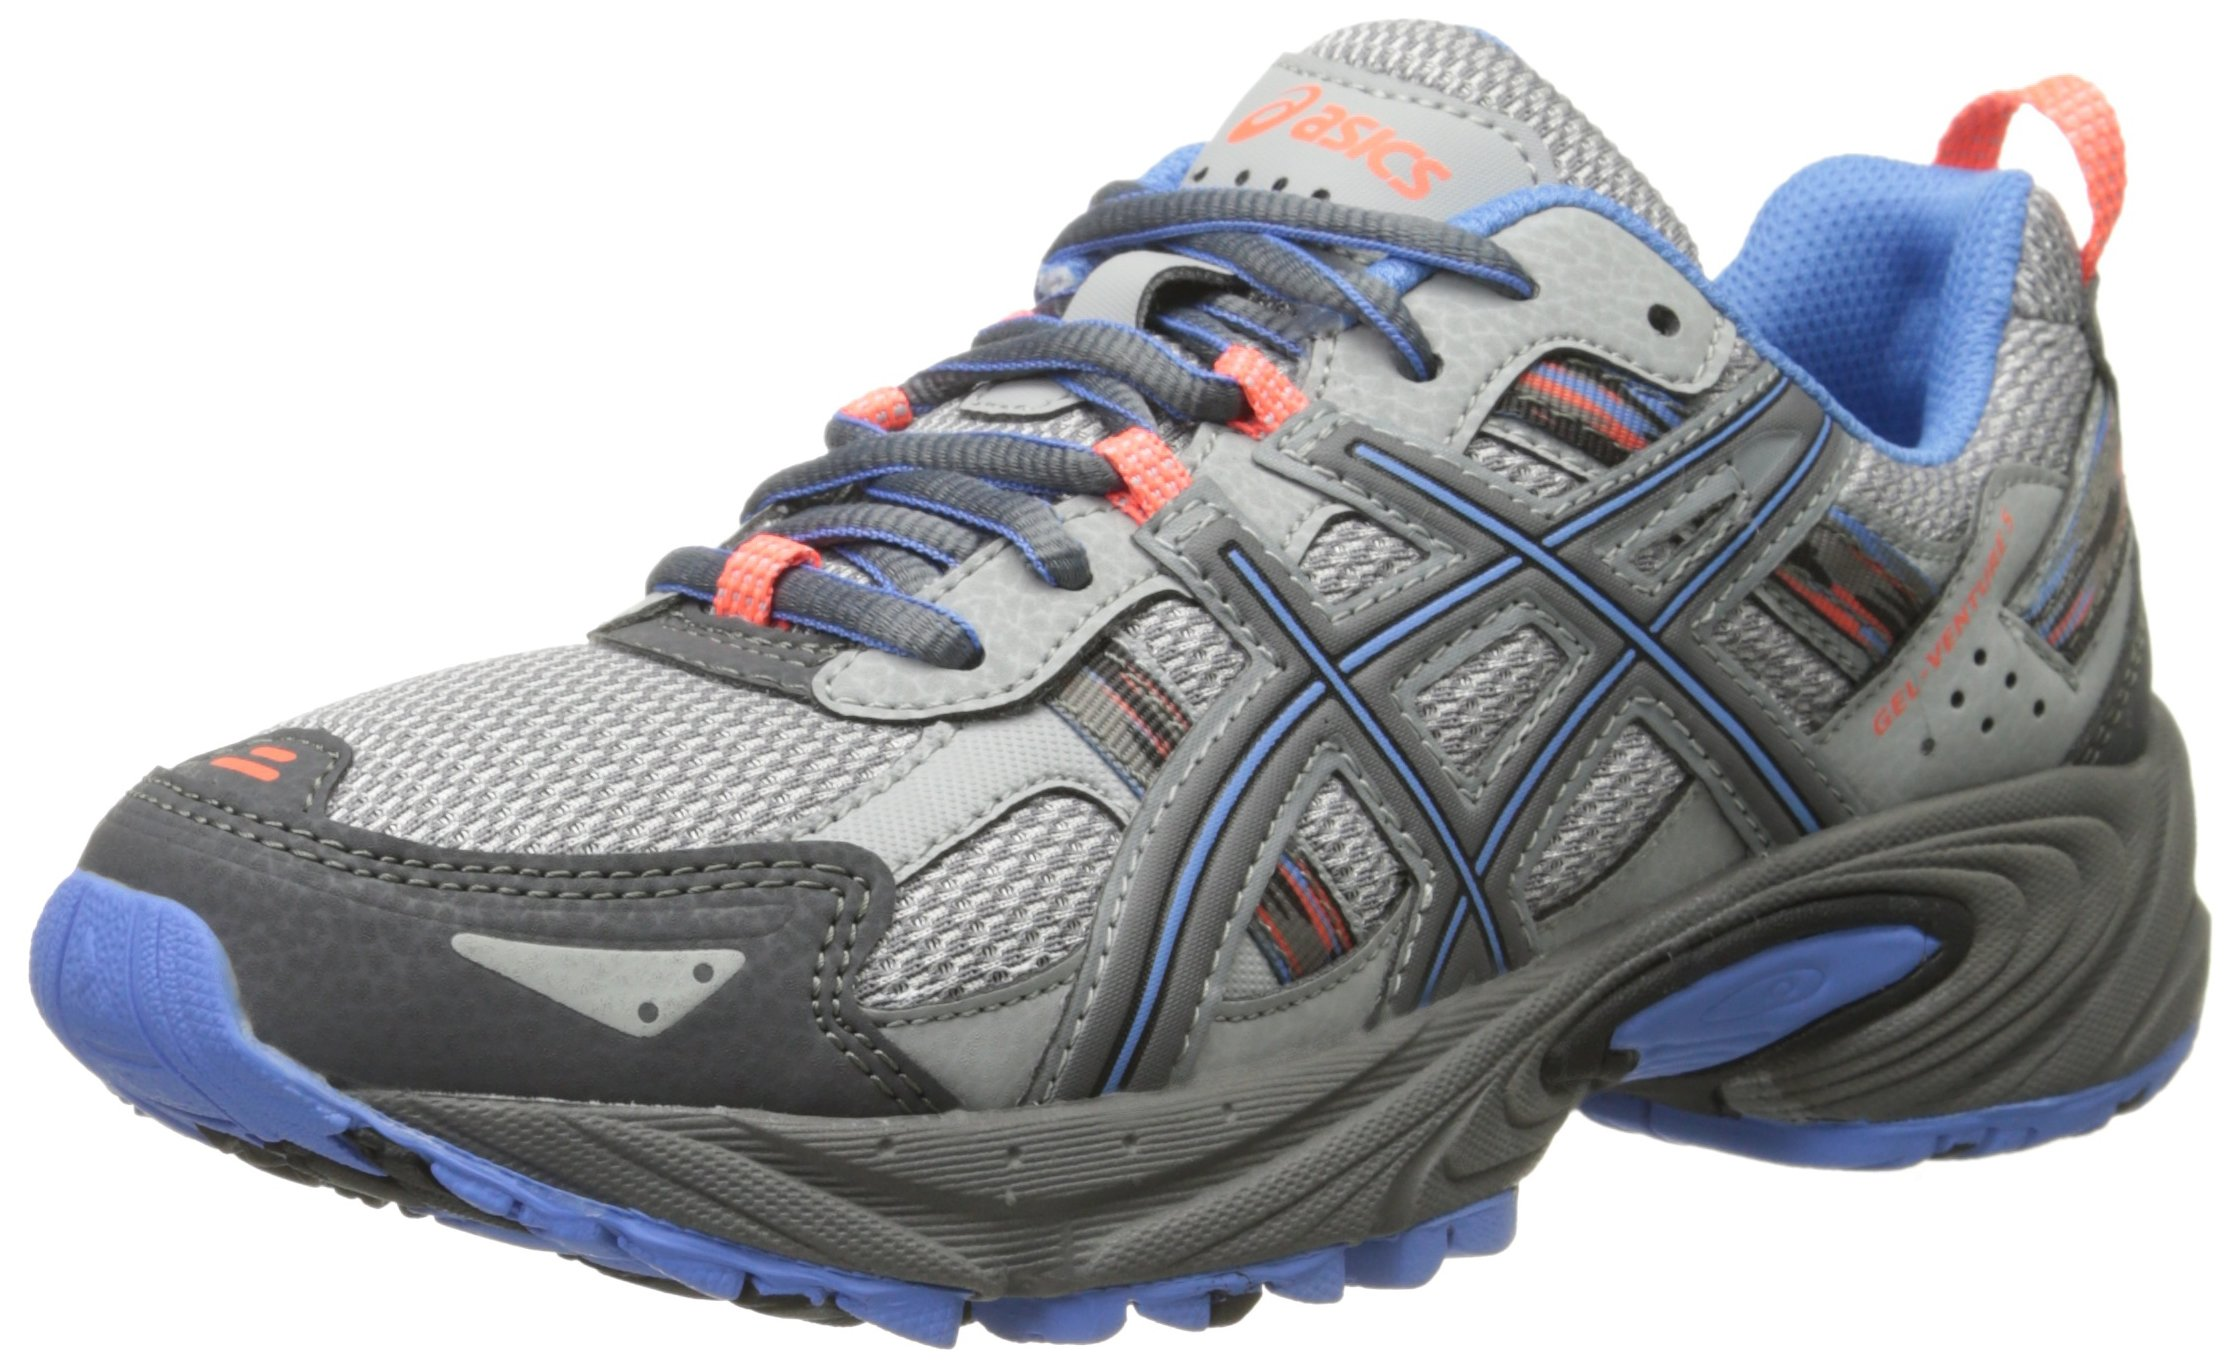 ASICS Women's Gel-Venture 5-W, Silver Grey/Carbon/Dutch Blue, 6.5 M US